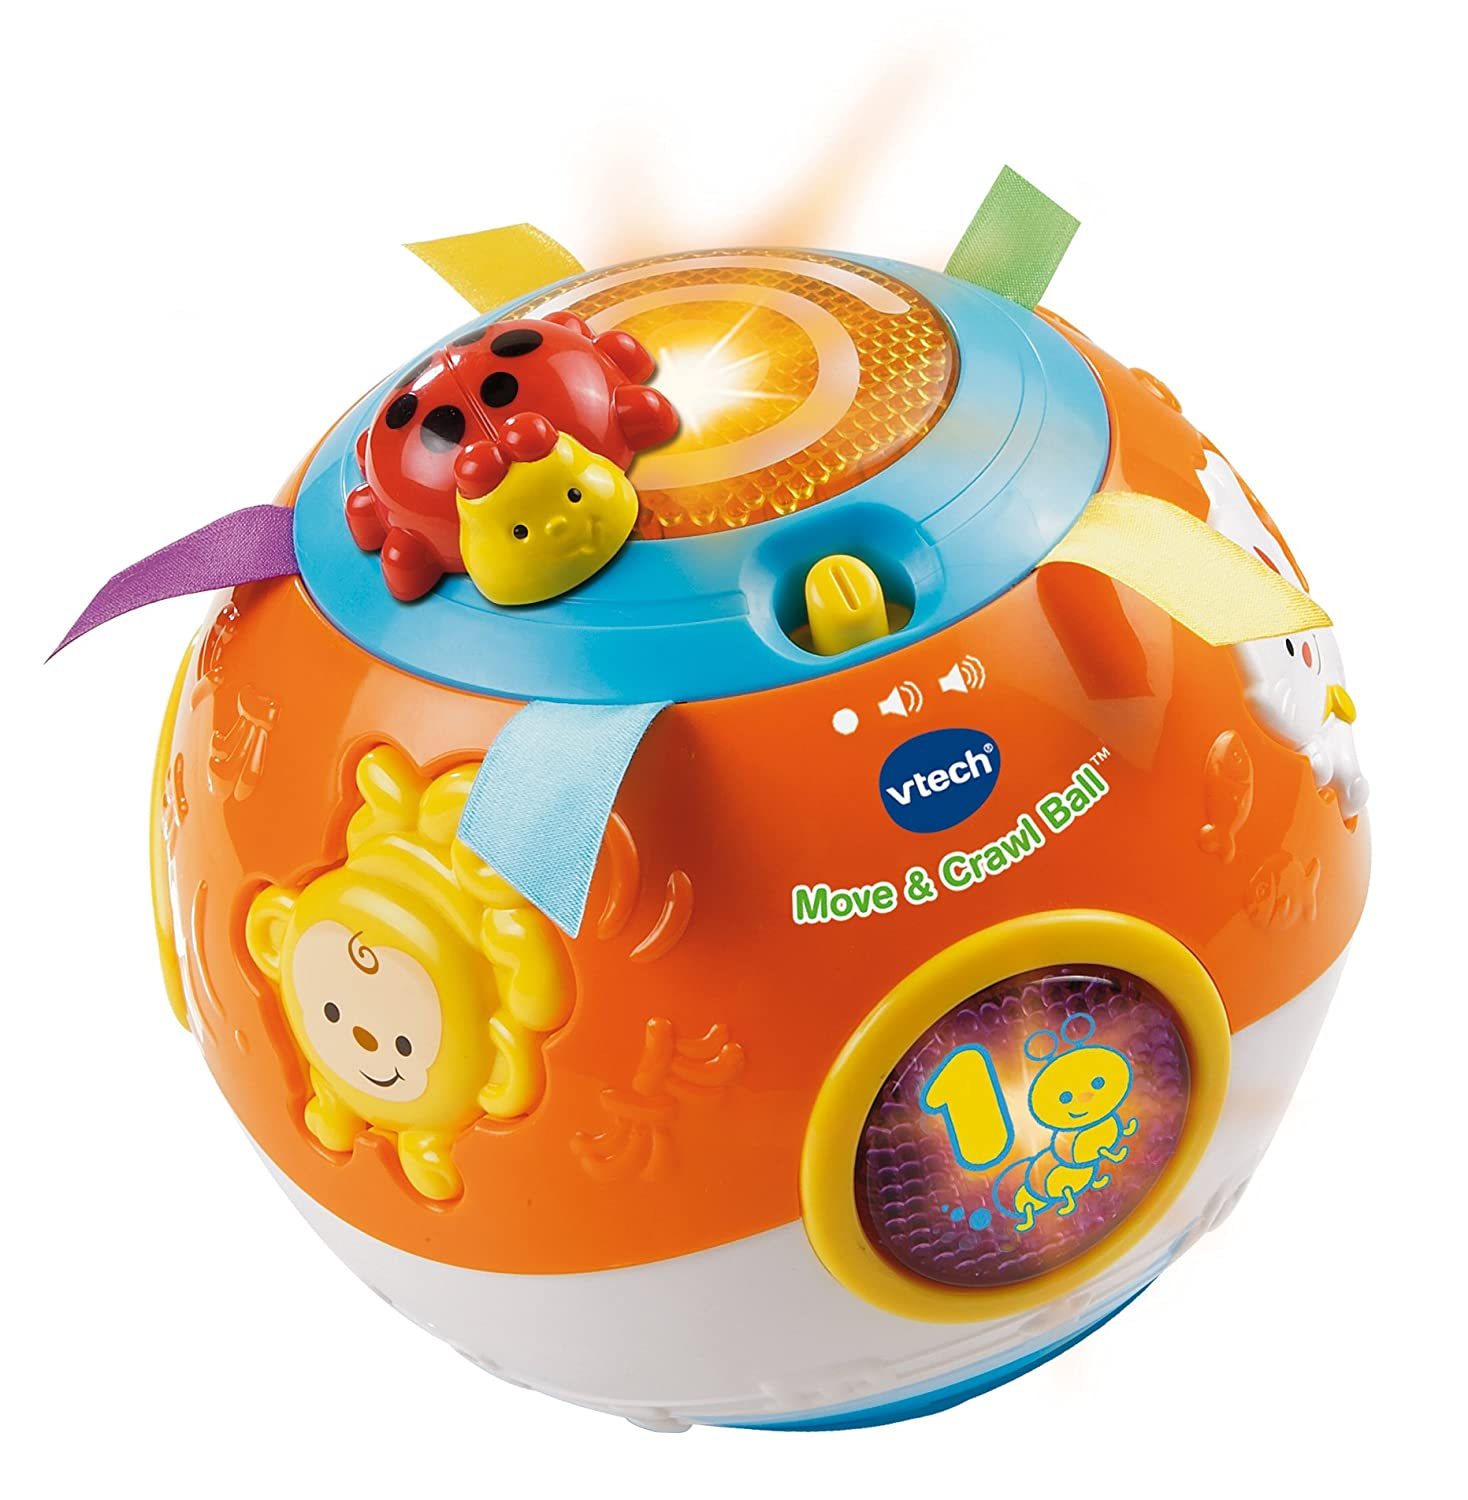 Amazon VTech Move and Crawl Ball Orange Toys & Games